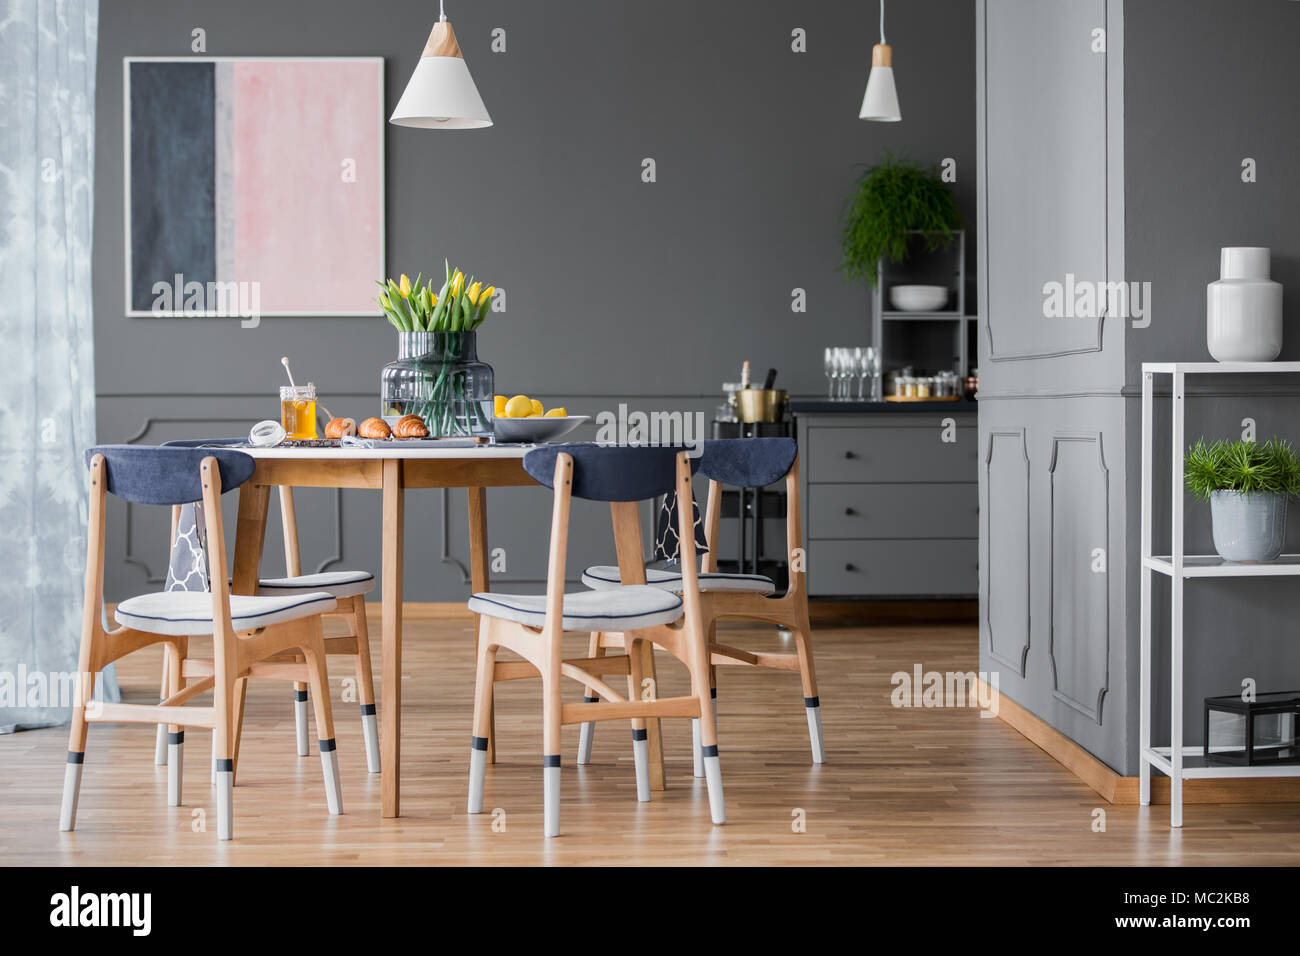 Wooden Paint Dipped Chairs Around A Small Dining Table With Pastries And An Abstract Painting On A Gray Wall Of A Dining Room Interior With Plants Stock Photo Alamy